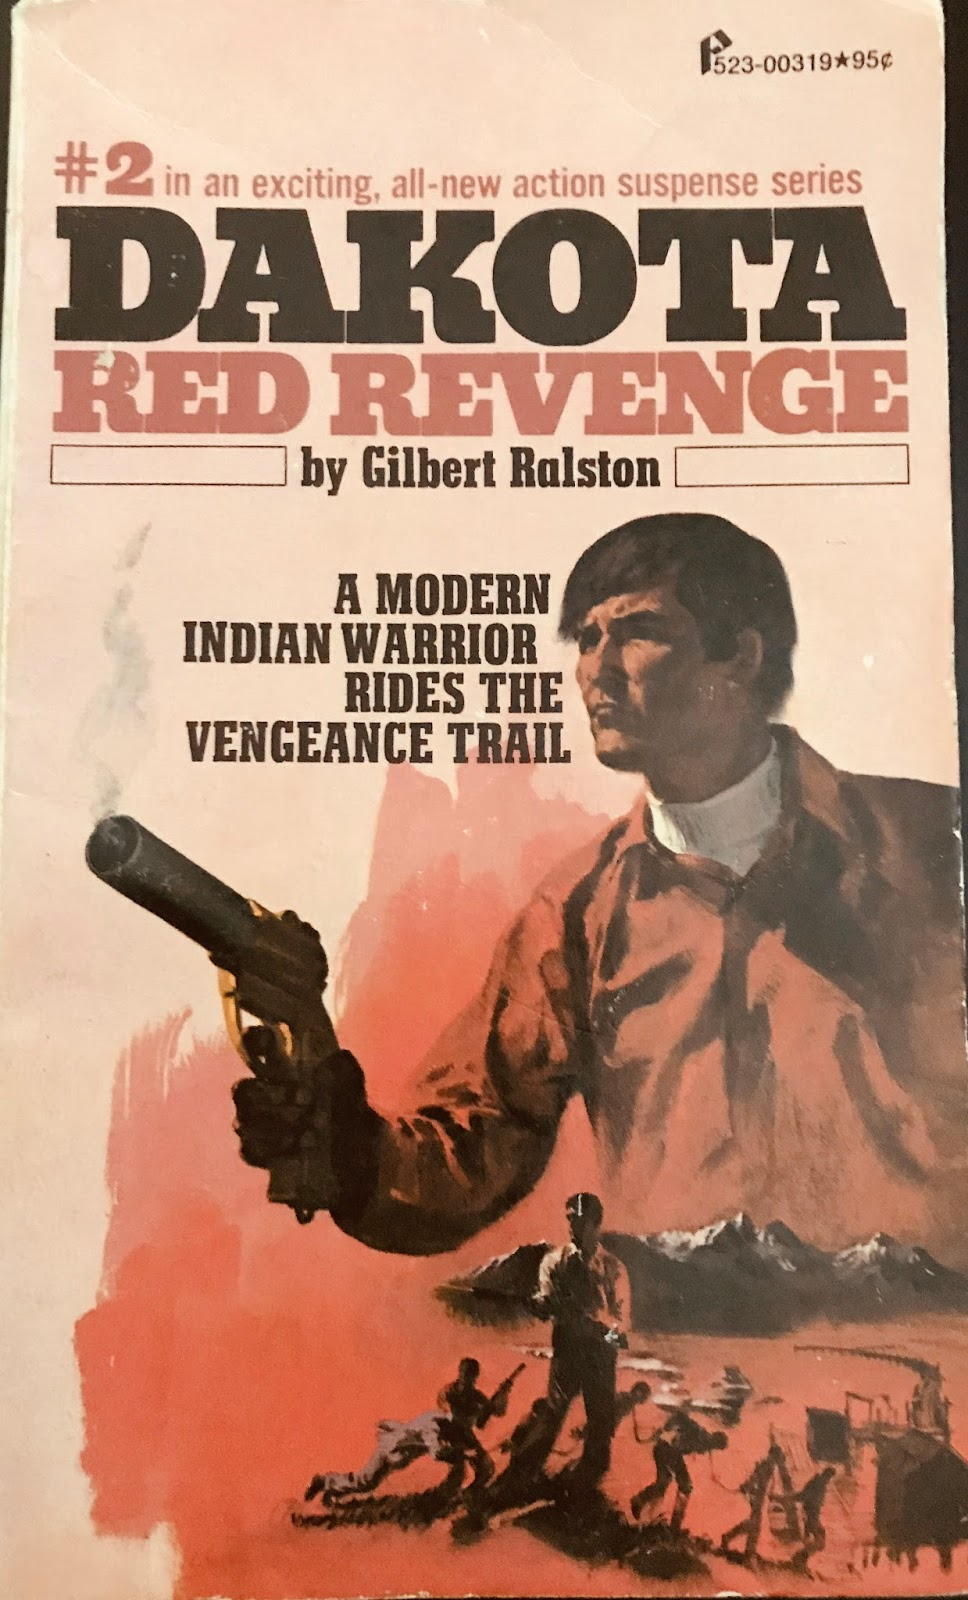 Paperback warrior march 2018 red revenge is another top notch effort from author gilbert ralston it was released in 1974 through the popular pinnacle adventure line and marks the fandeluxe Image collections